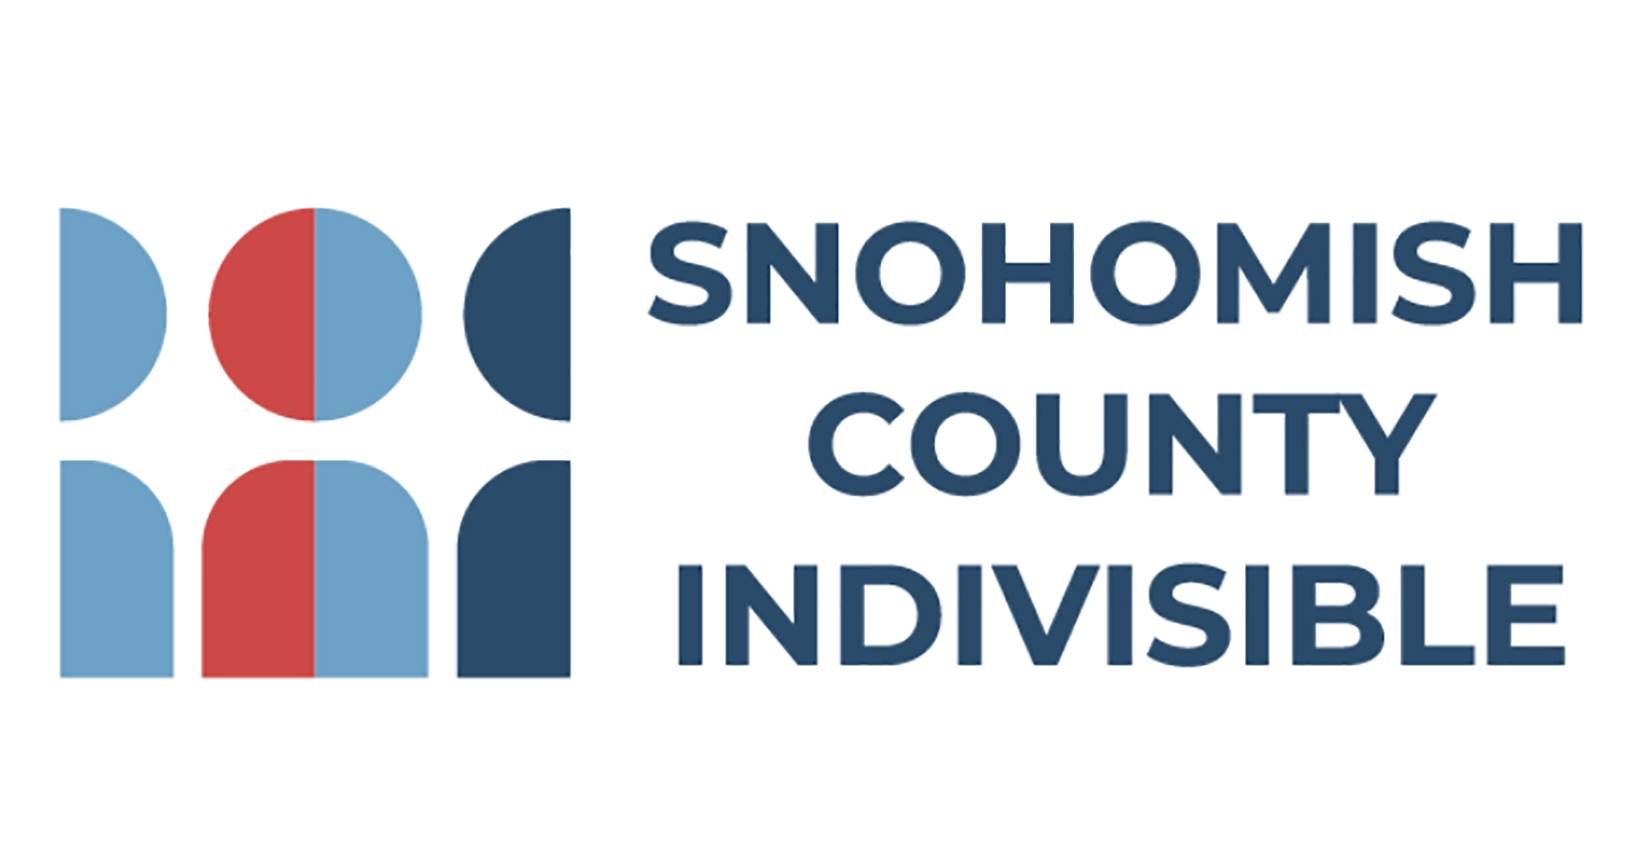 Snohomish County Indivisible